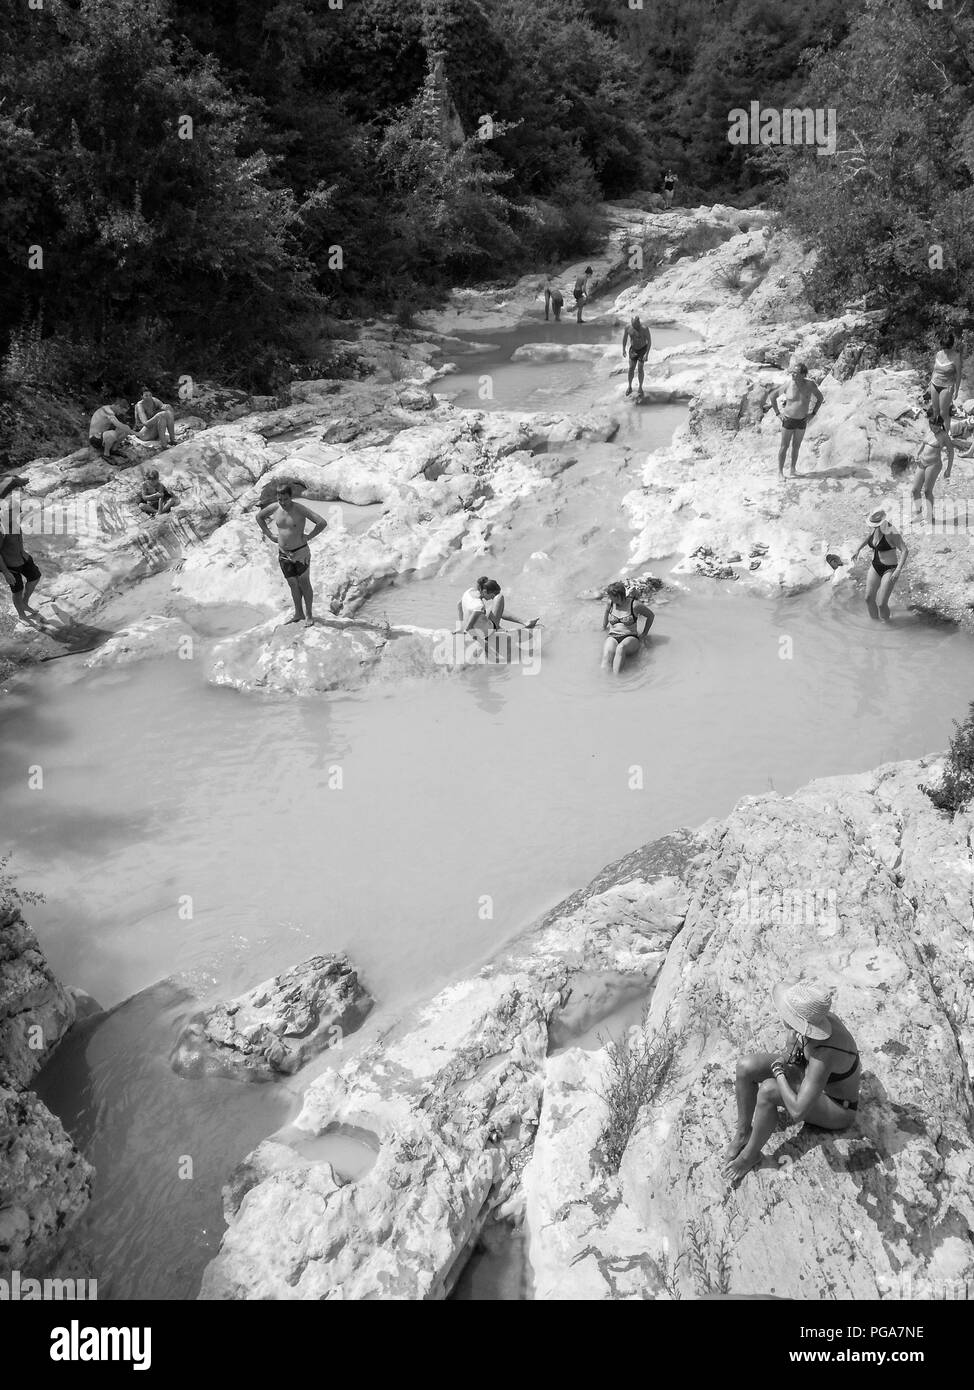 Kotli, Croatia - July 27,2018: View of the Mirna riverbed in Kotli, Croatia. Locals and tourists bathe in the rinsed out waterholes. - Stock Image